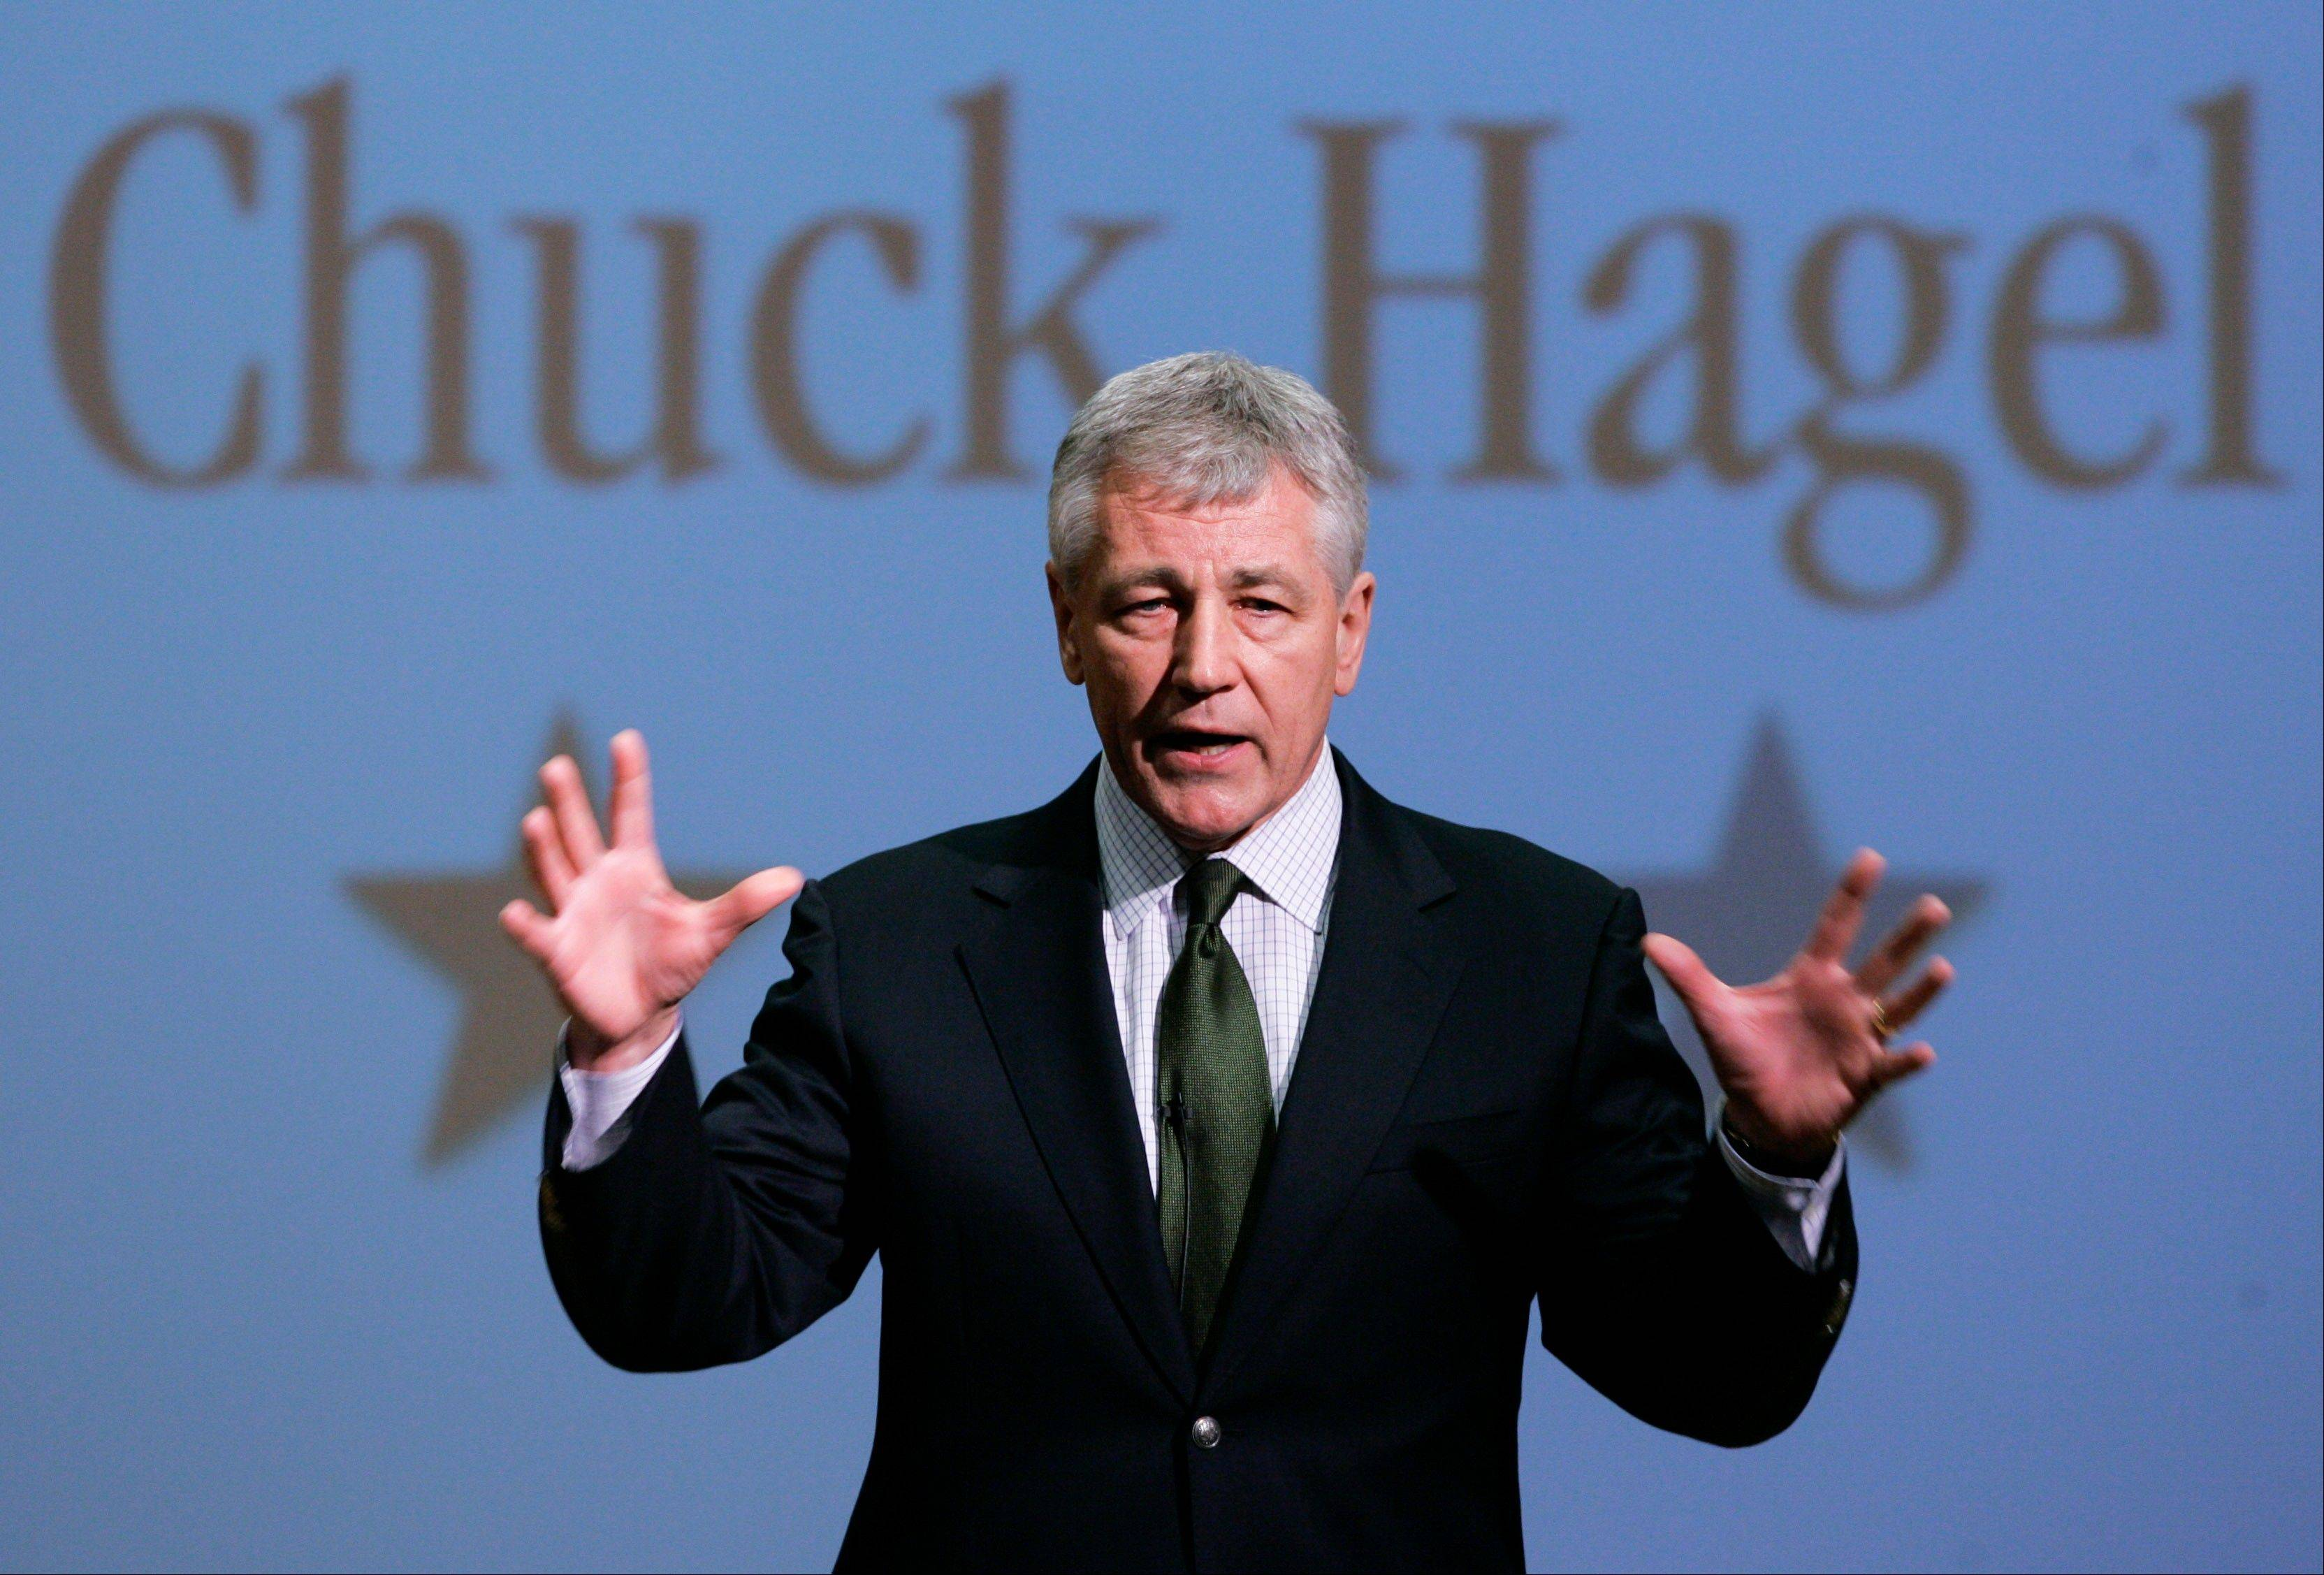 President Barack Obama will nominate former Sen. Chuck Hagel of Nebraska as his next defense secretary, a senior administration official said Sunday.